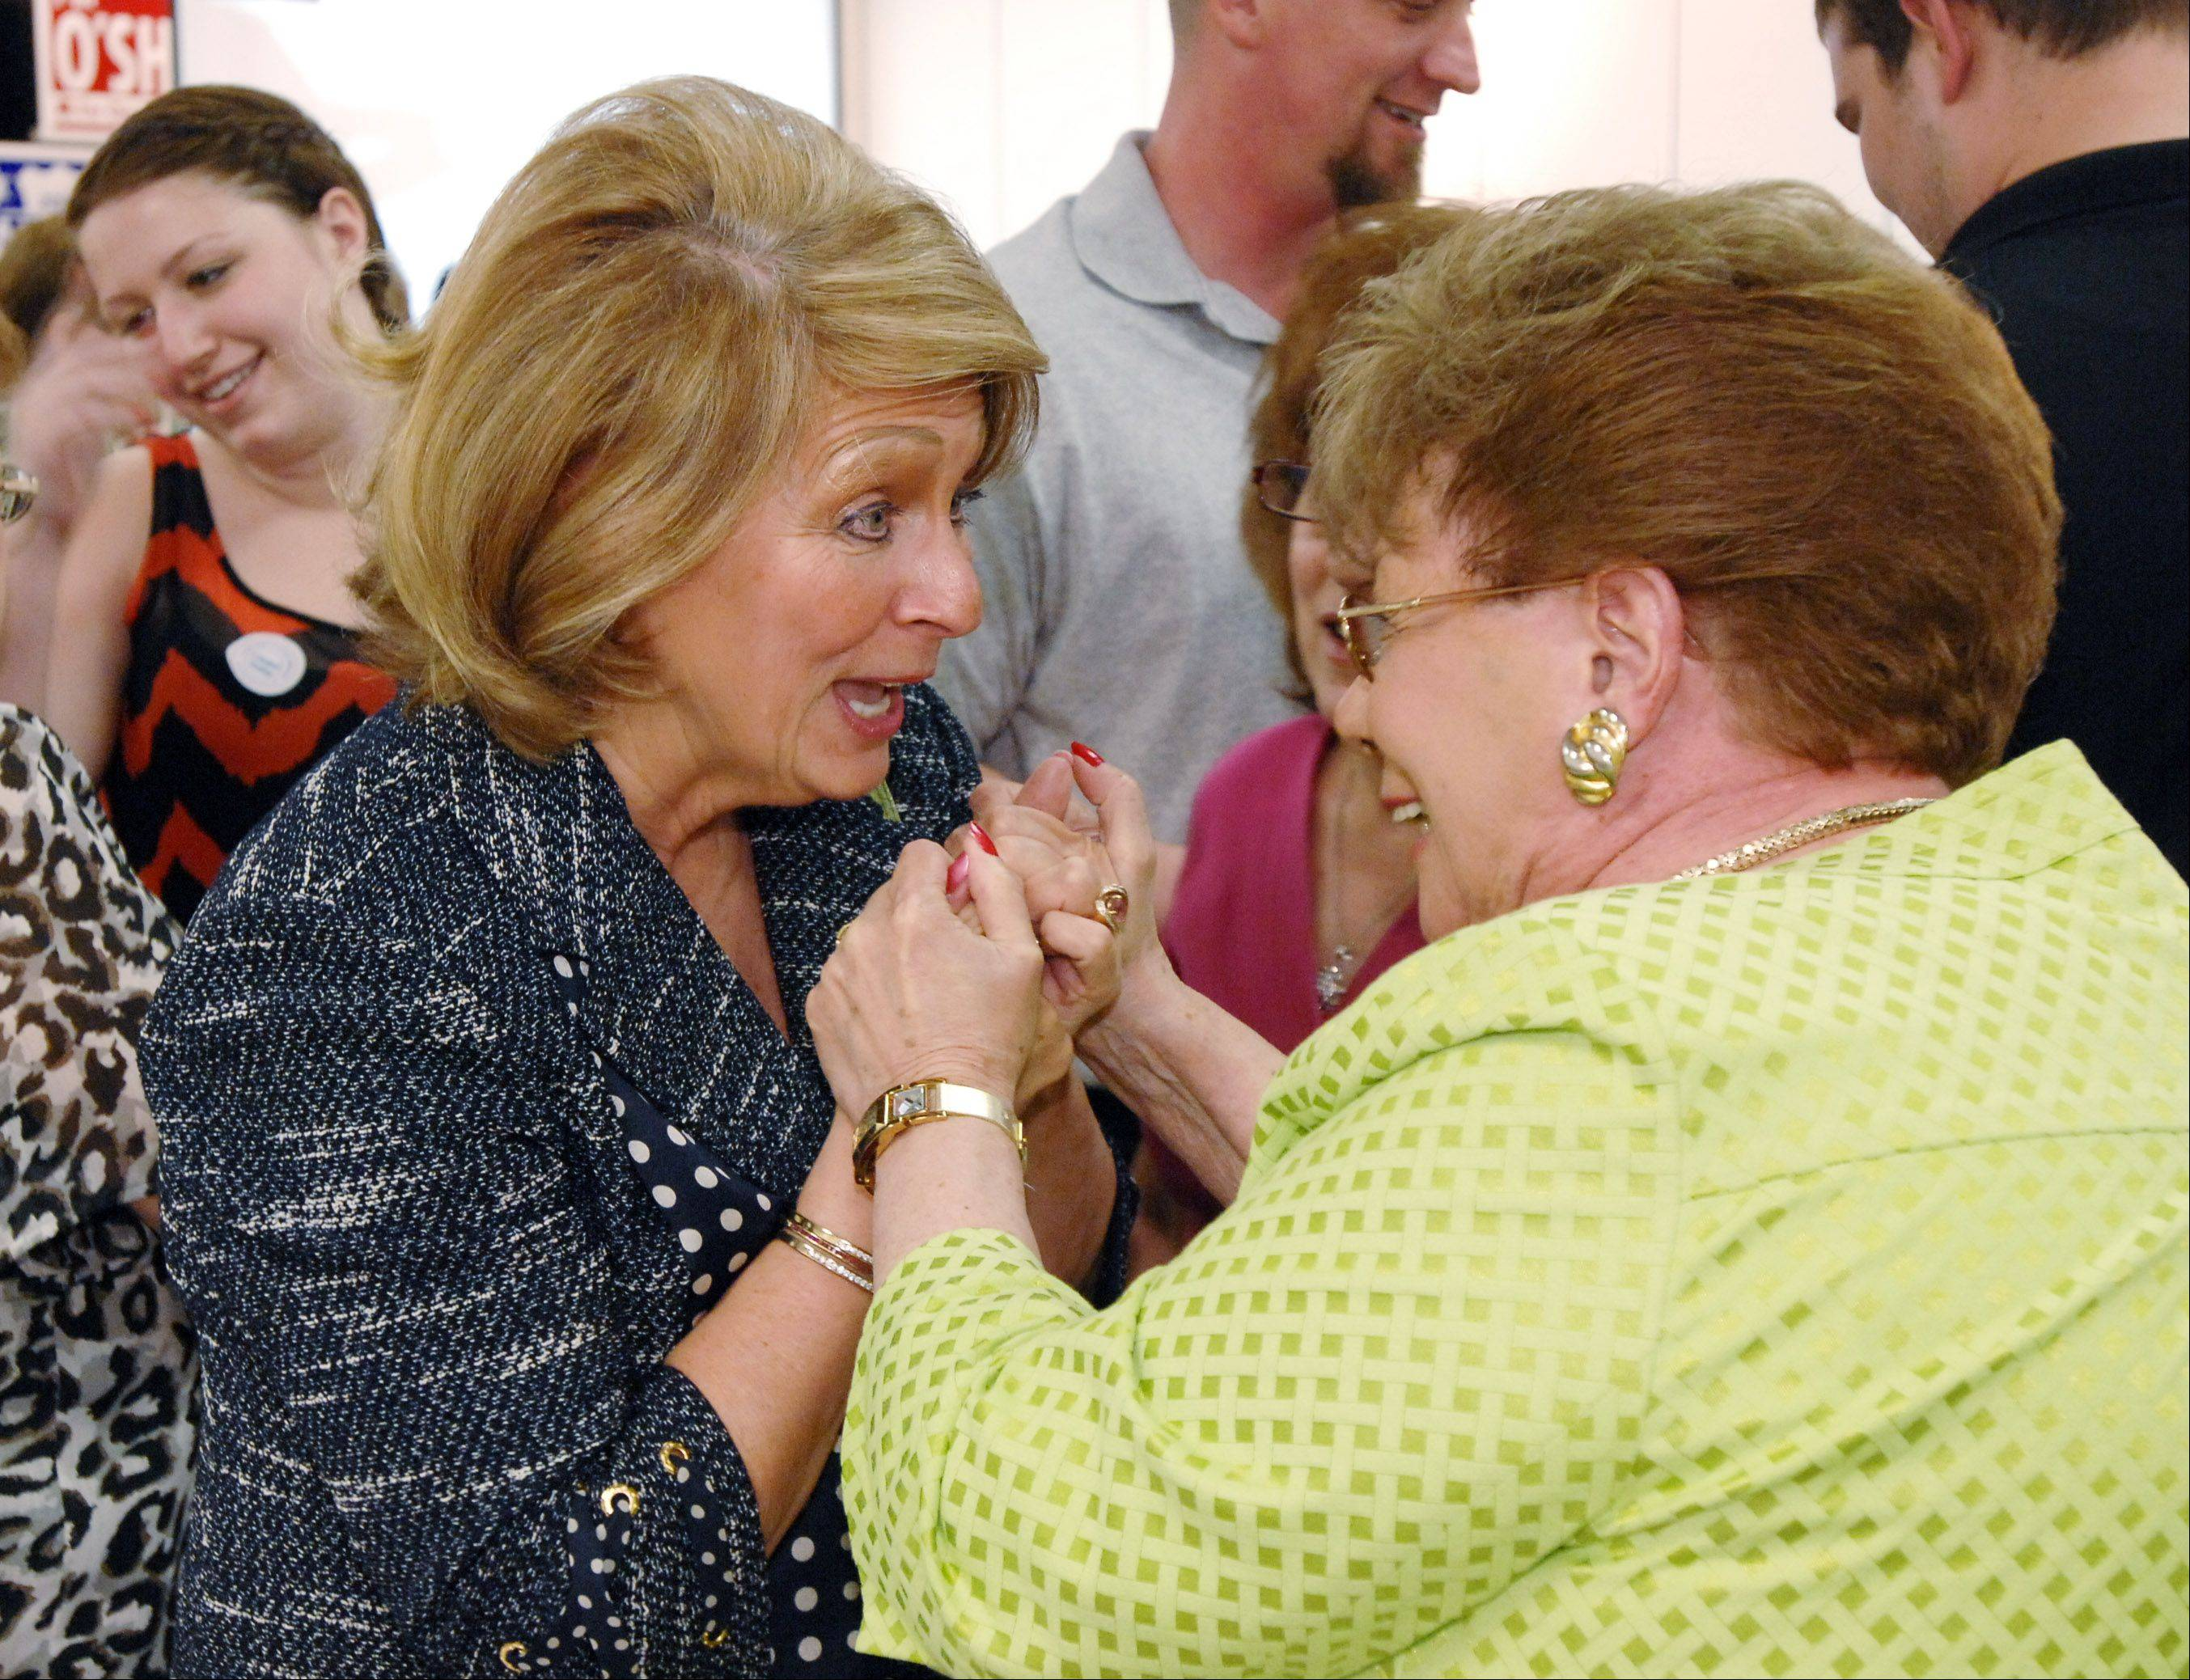 District 23 State Senator Carole Pankau greets supporter and Bloomingdale Township Clerk Fran Scalafini at the Bloomingdale Township Republican headquarters as they await election returns. Pankau won the nomination and advances to the November general election.